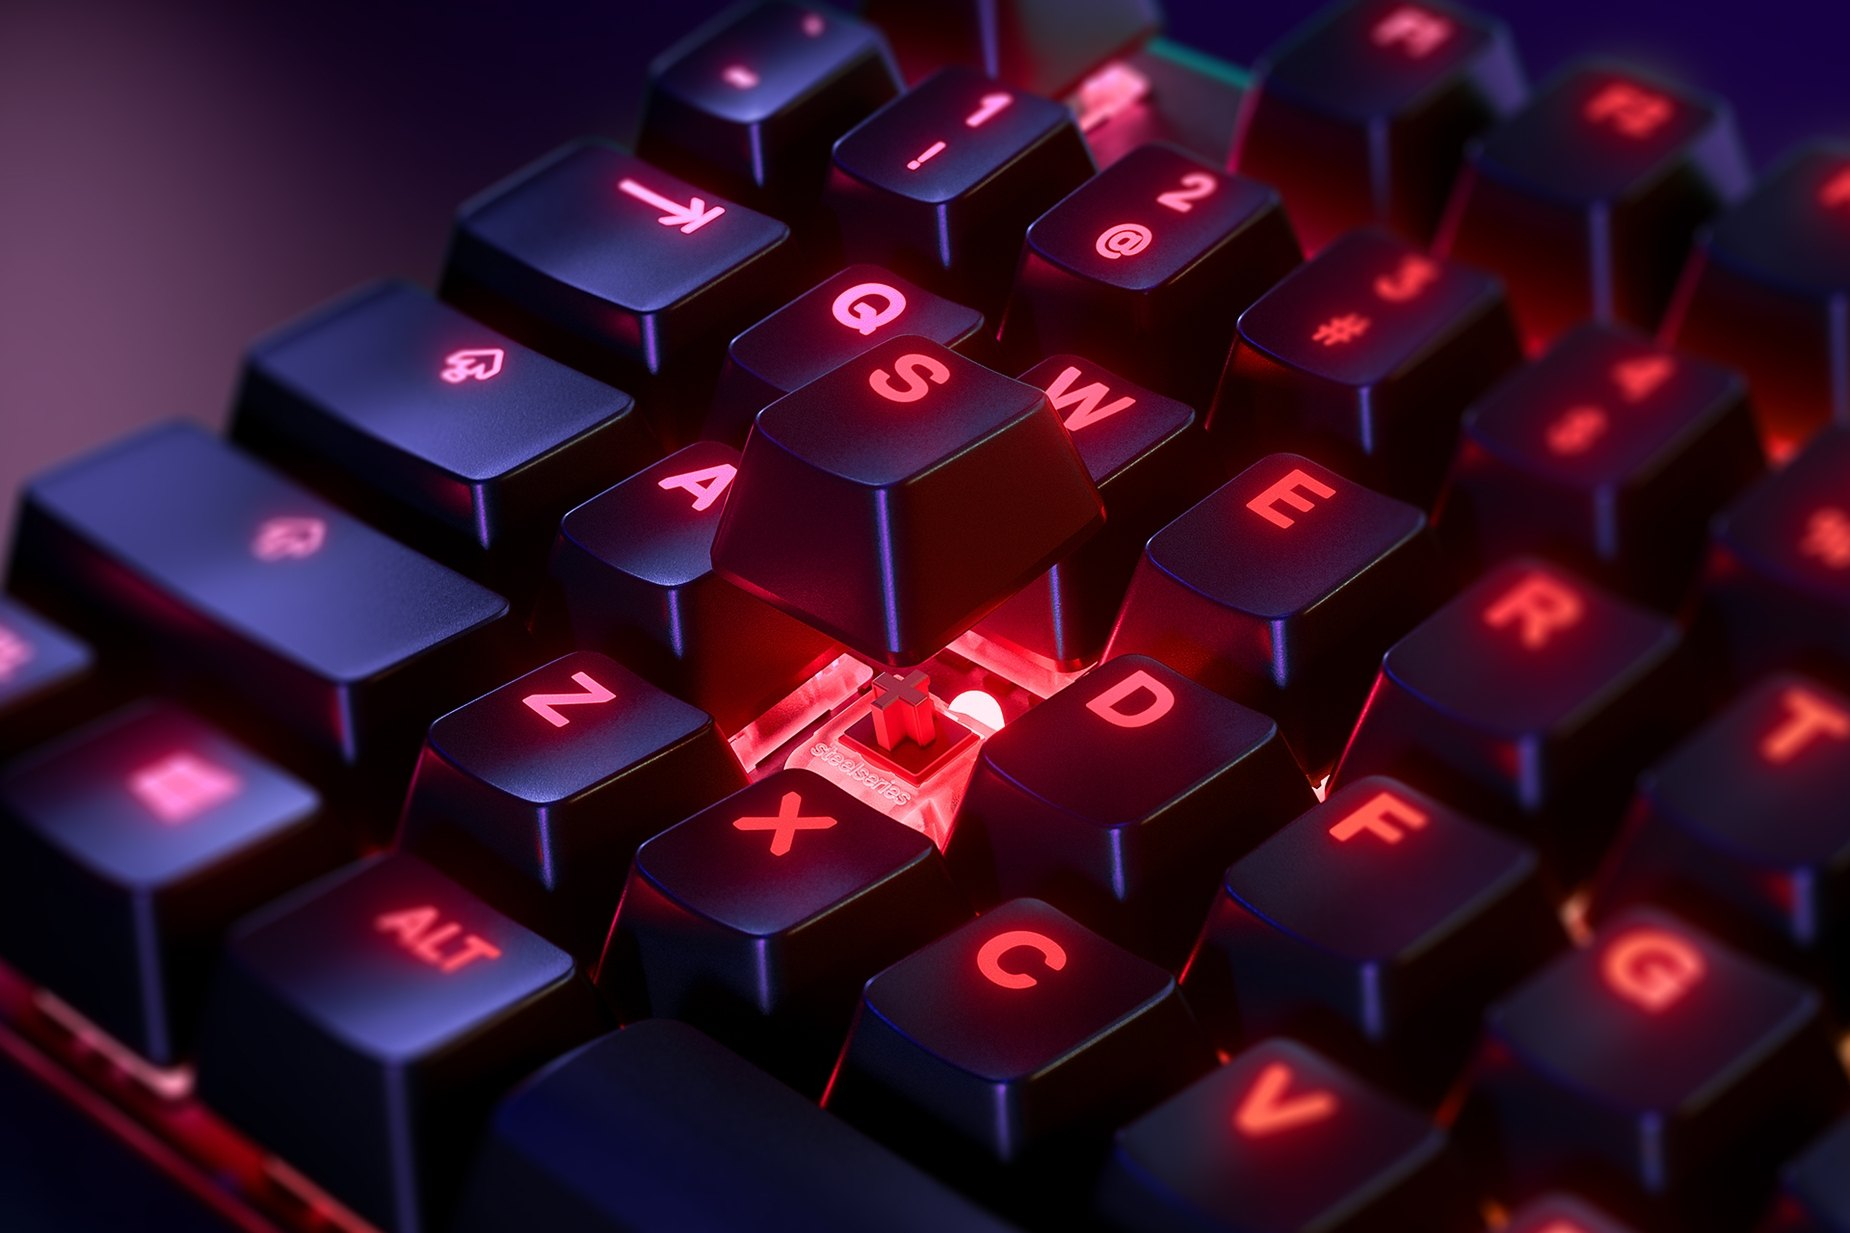 Zoomed in view of a single key on the Russian - Apex 7 (Red Switch) gaming keyboard, the key is raised up to show the SteelSeries QX2 Mechanical RGB Switch underneath